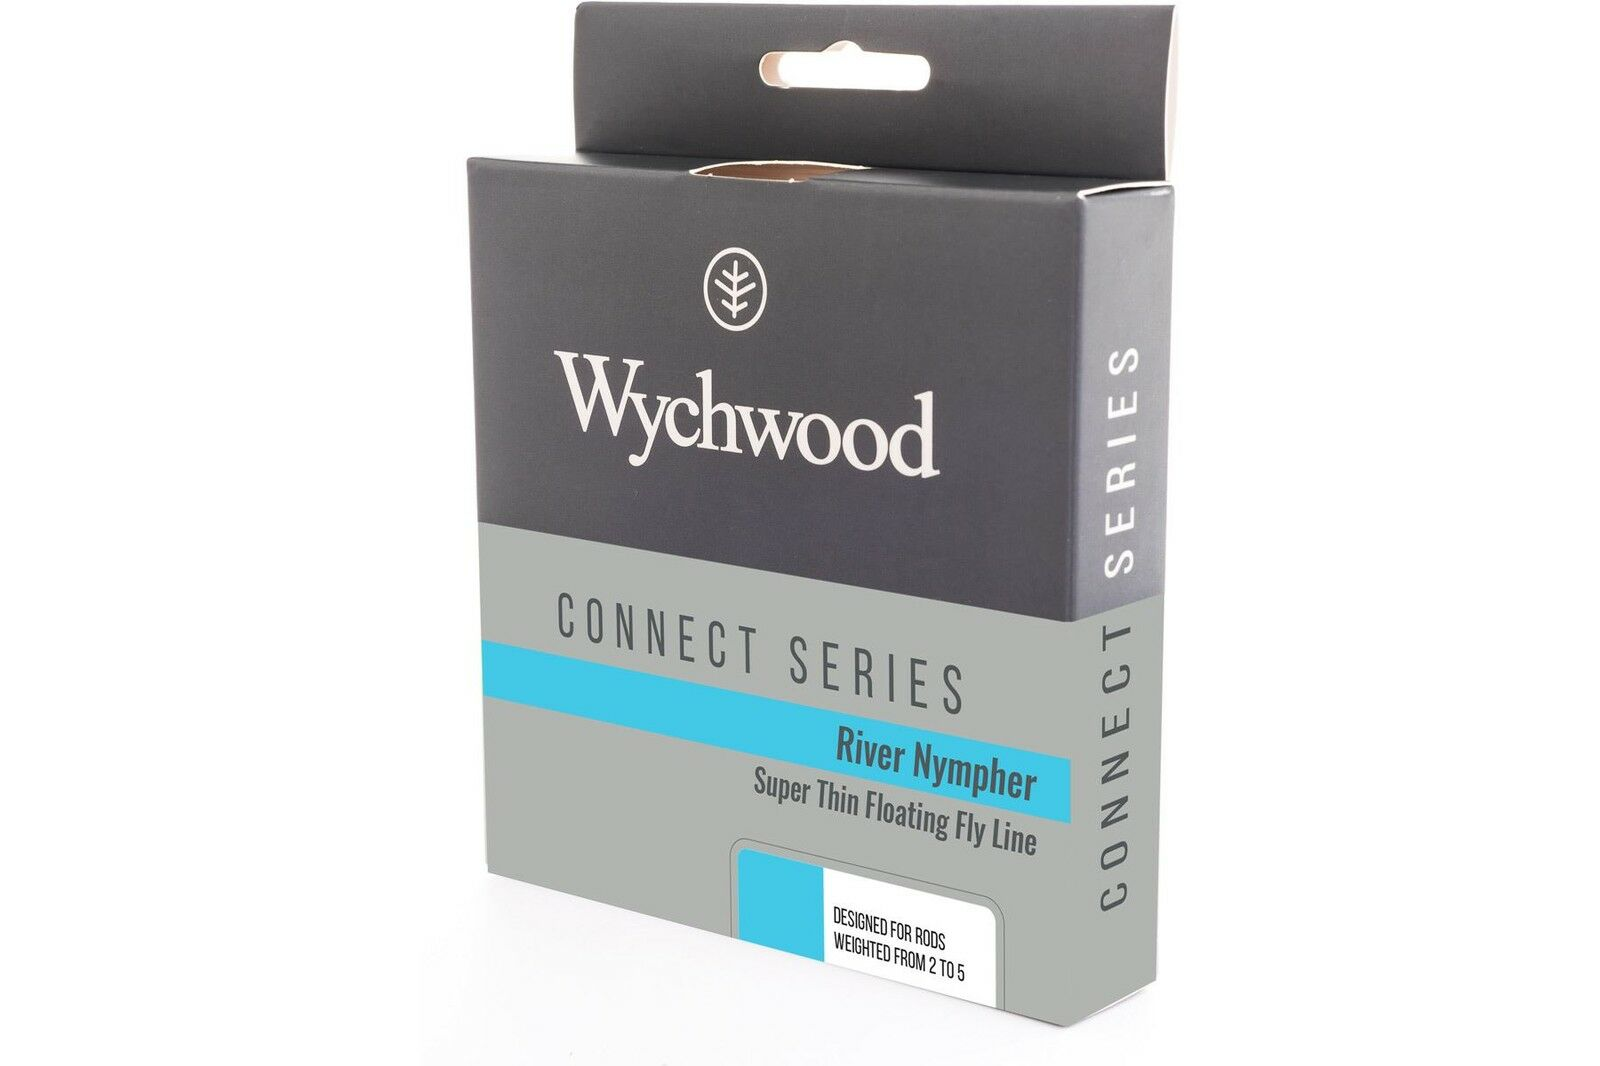 Wychwood Connect Serie Fiume Nympher 2-wt 4-wt Terminale   Leeda